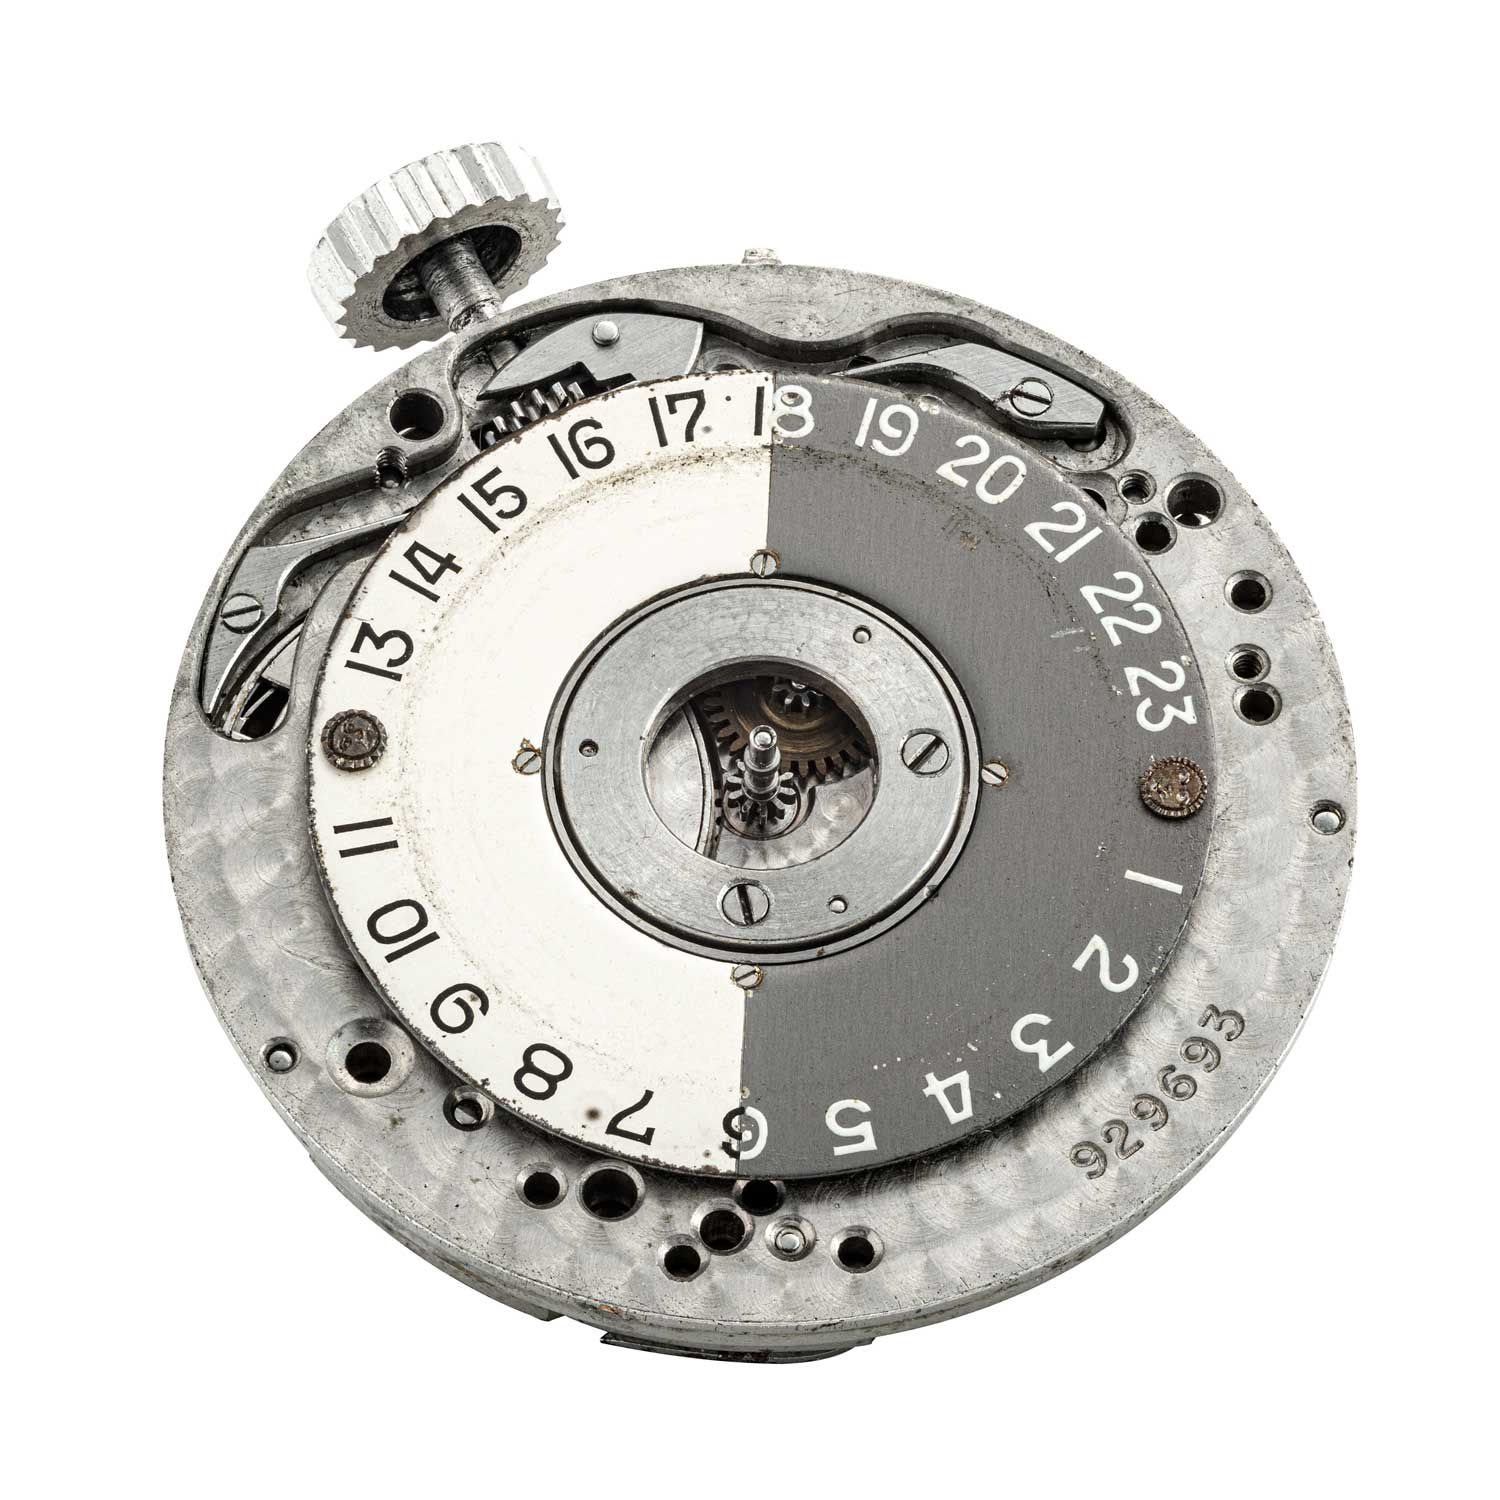 Marked with serial number 929'693, the watch's dial was made by Stern Frères in collaboration with Louis Cottier's workshop